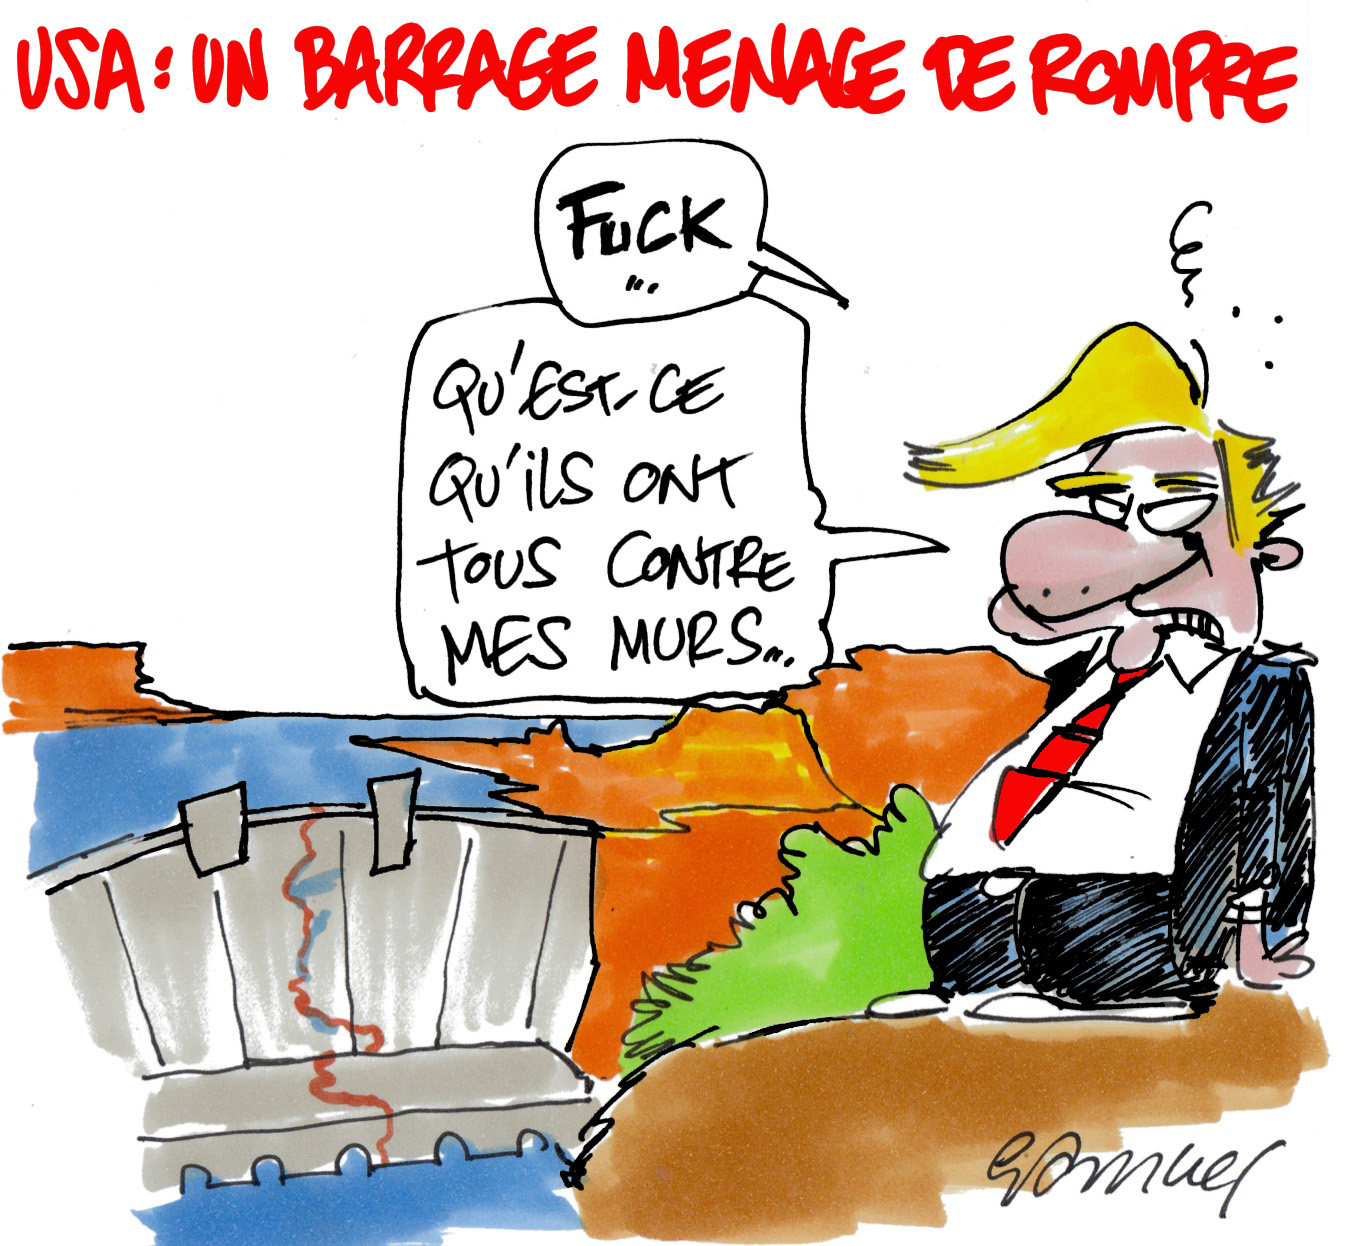 usa un barrage 1